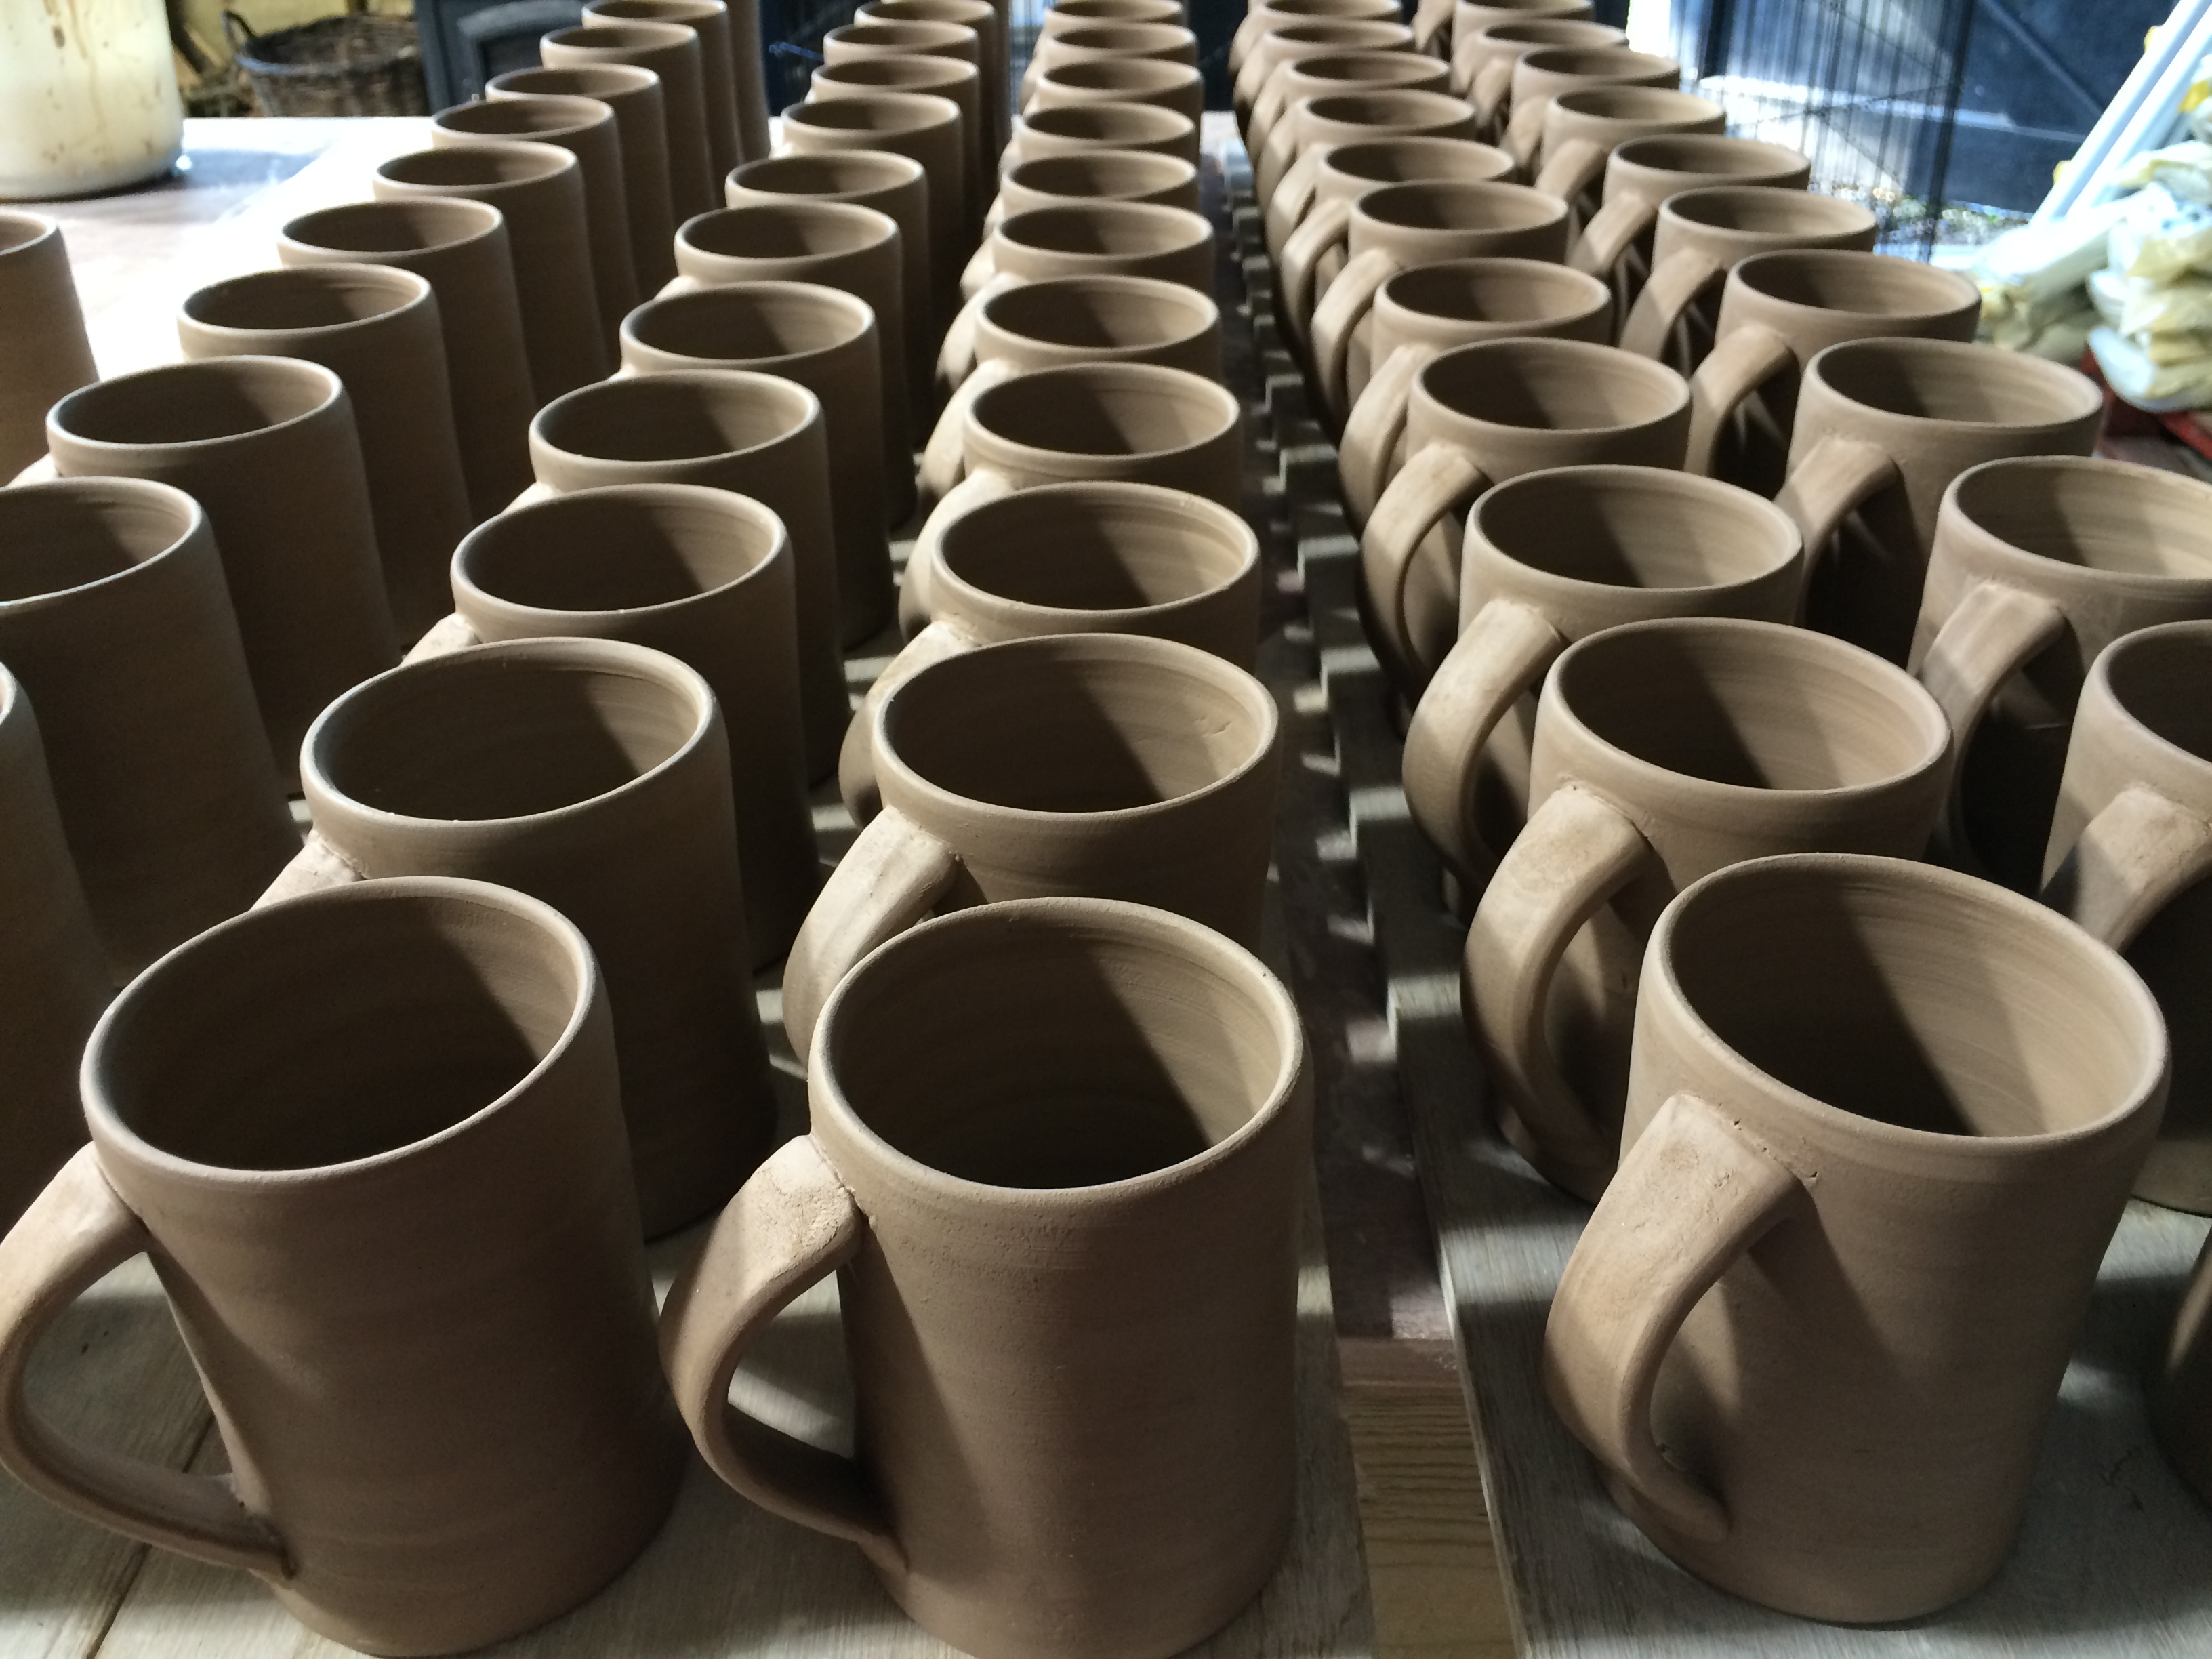 mugs awaiting shipping